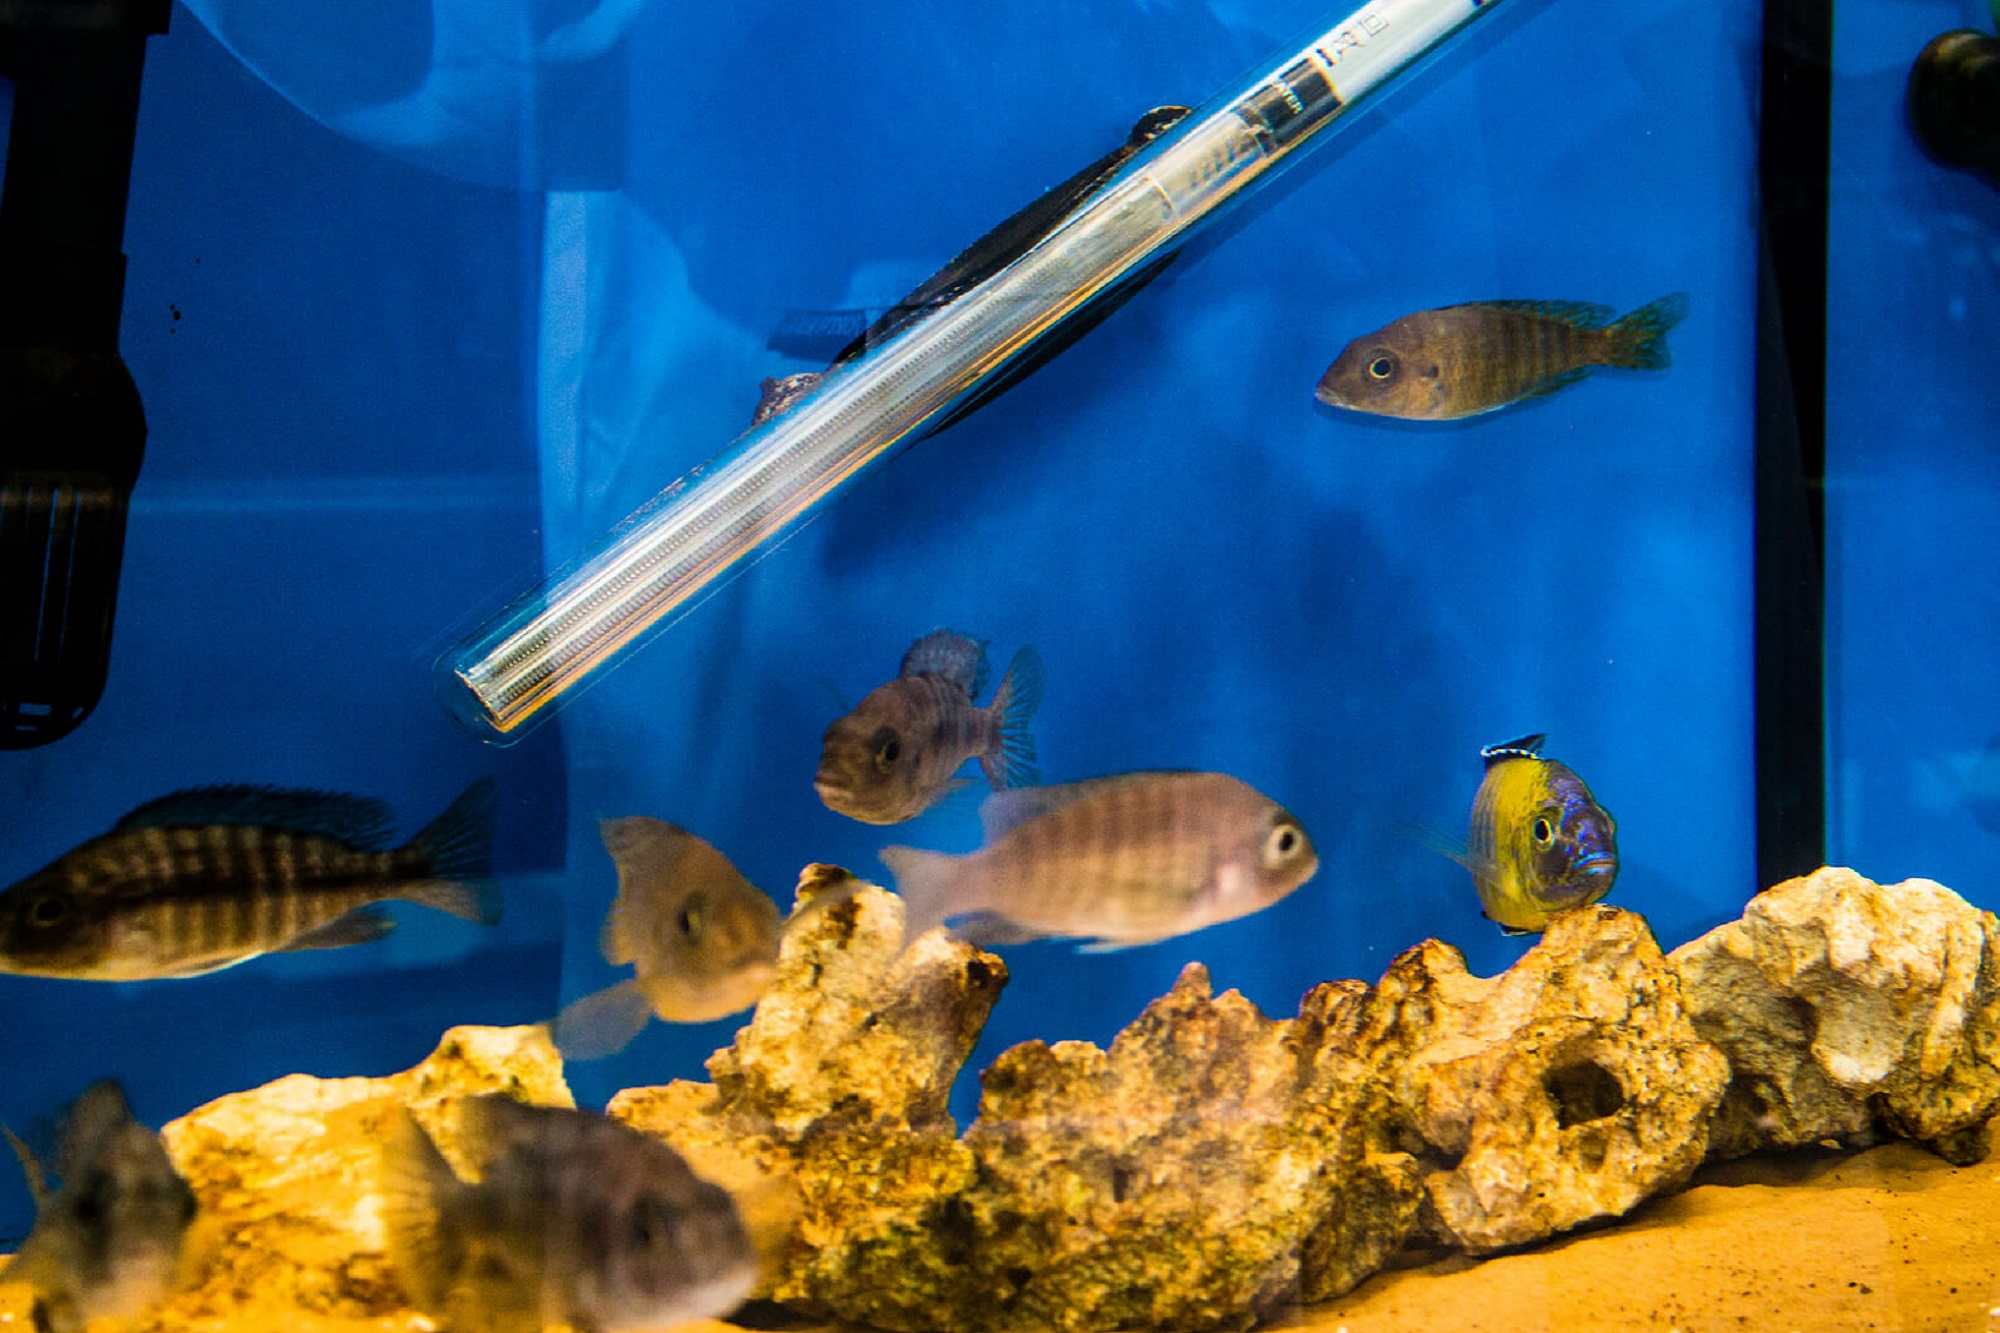 samples being taken from a fish tank in a lab